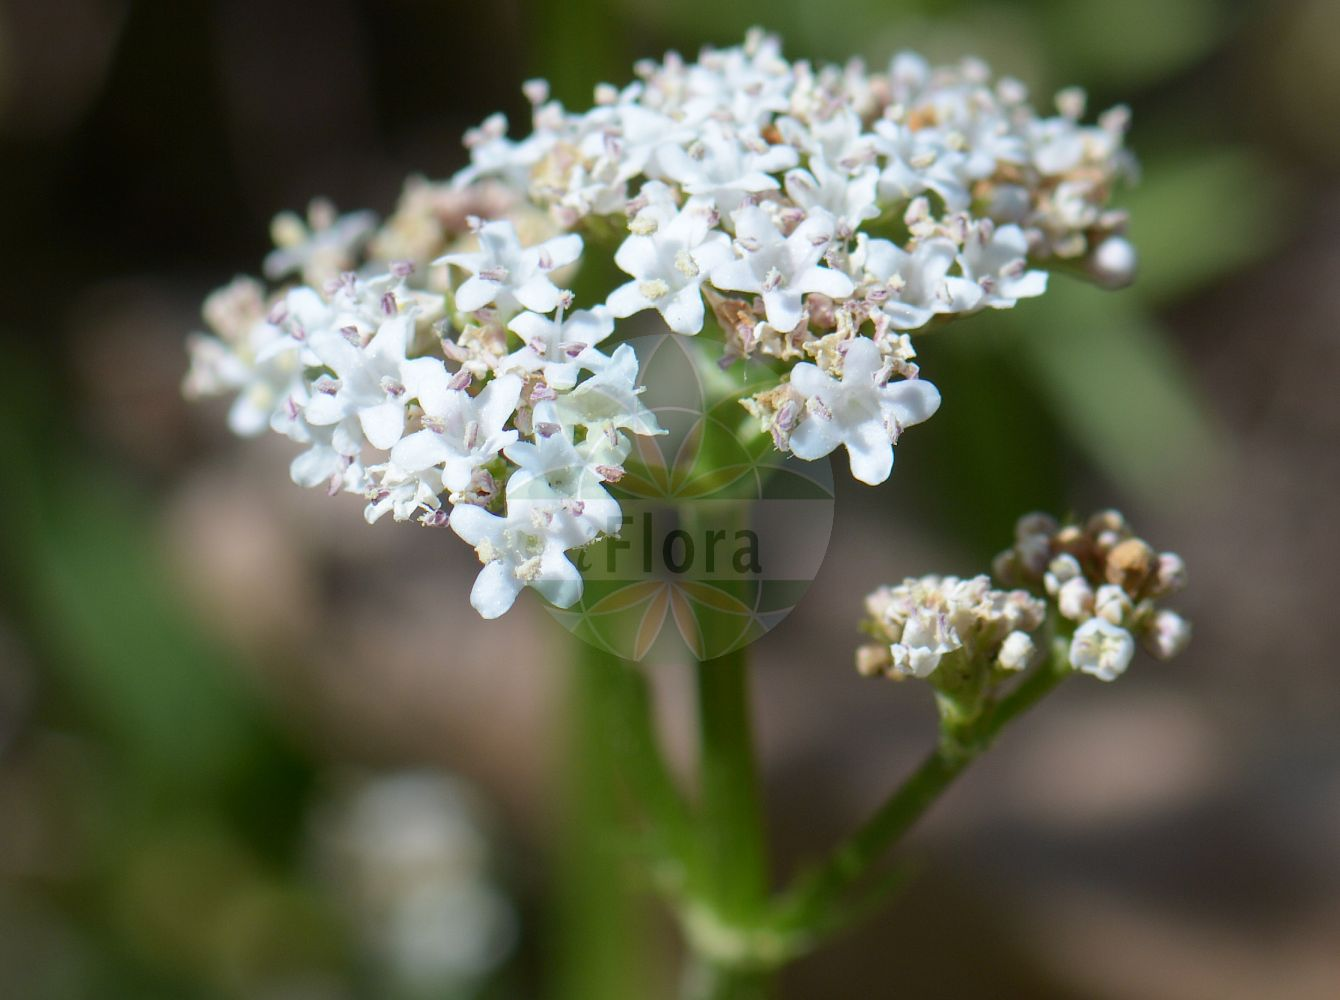 Foto von Valeriana dioica (Sumpf-Baldrian - Marsh Valerian). Das Foto wurde in Heidelberg, Baden-Wuerttemberg, Deutschland aufgenommen. ---- Photo of Valeriana dioica (Sumpf-Baldrian - Marsh Valerian).The picture was taken in Heidelberg, Baden-Wuerttemberg, Germany.(Valeriana dioica,Sumpf-Baldrian,Marsh Valerian,Lesser Valerian,Small Wild Valerian,Valeriana,Baldrian,Valerian,Caprifoliaceae,Geissblattgewaechse,Honeysuckle family)